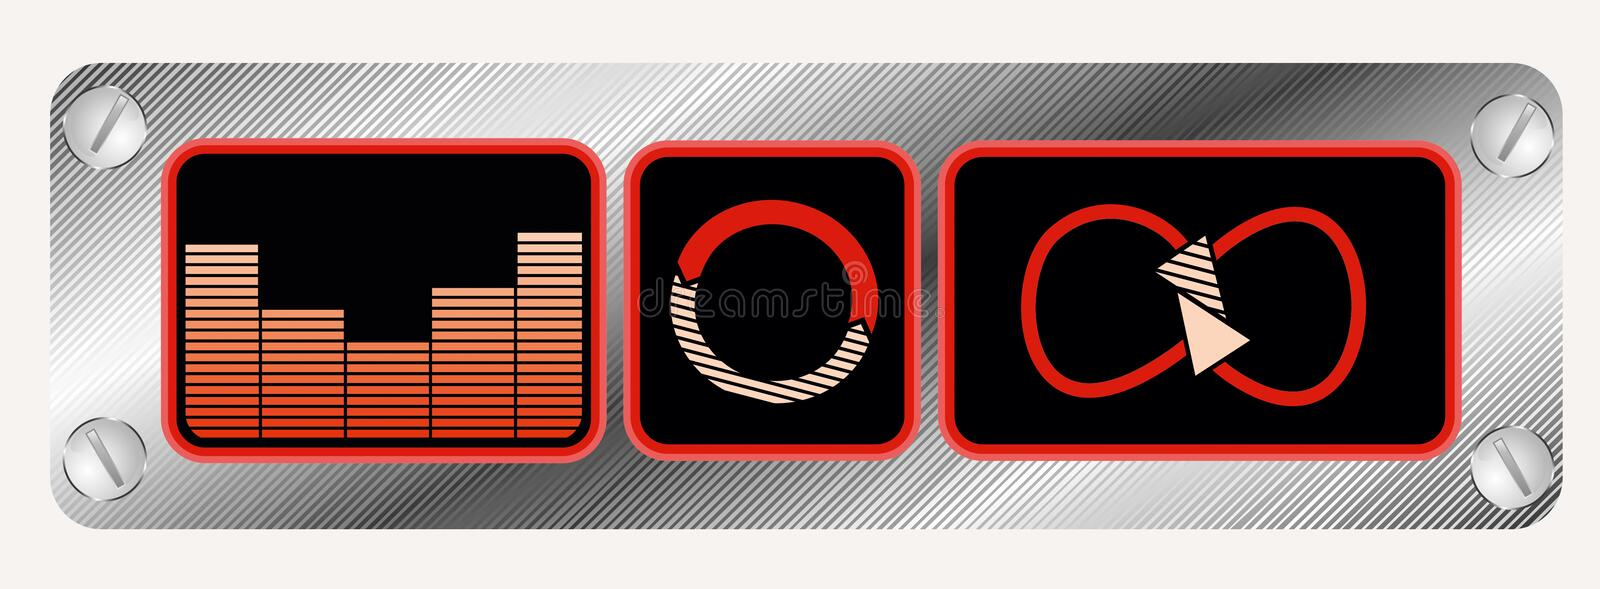 Media player elements royalty free stock photo